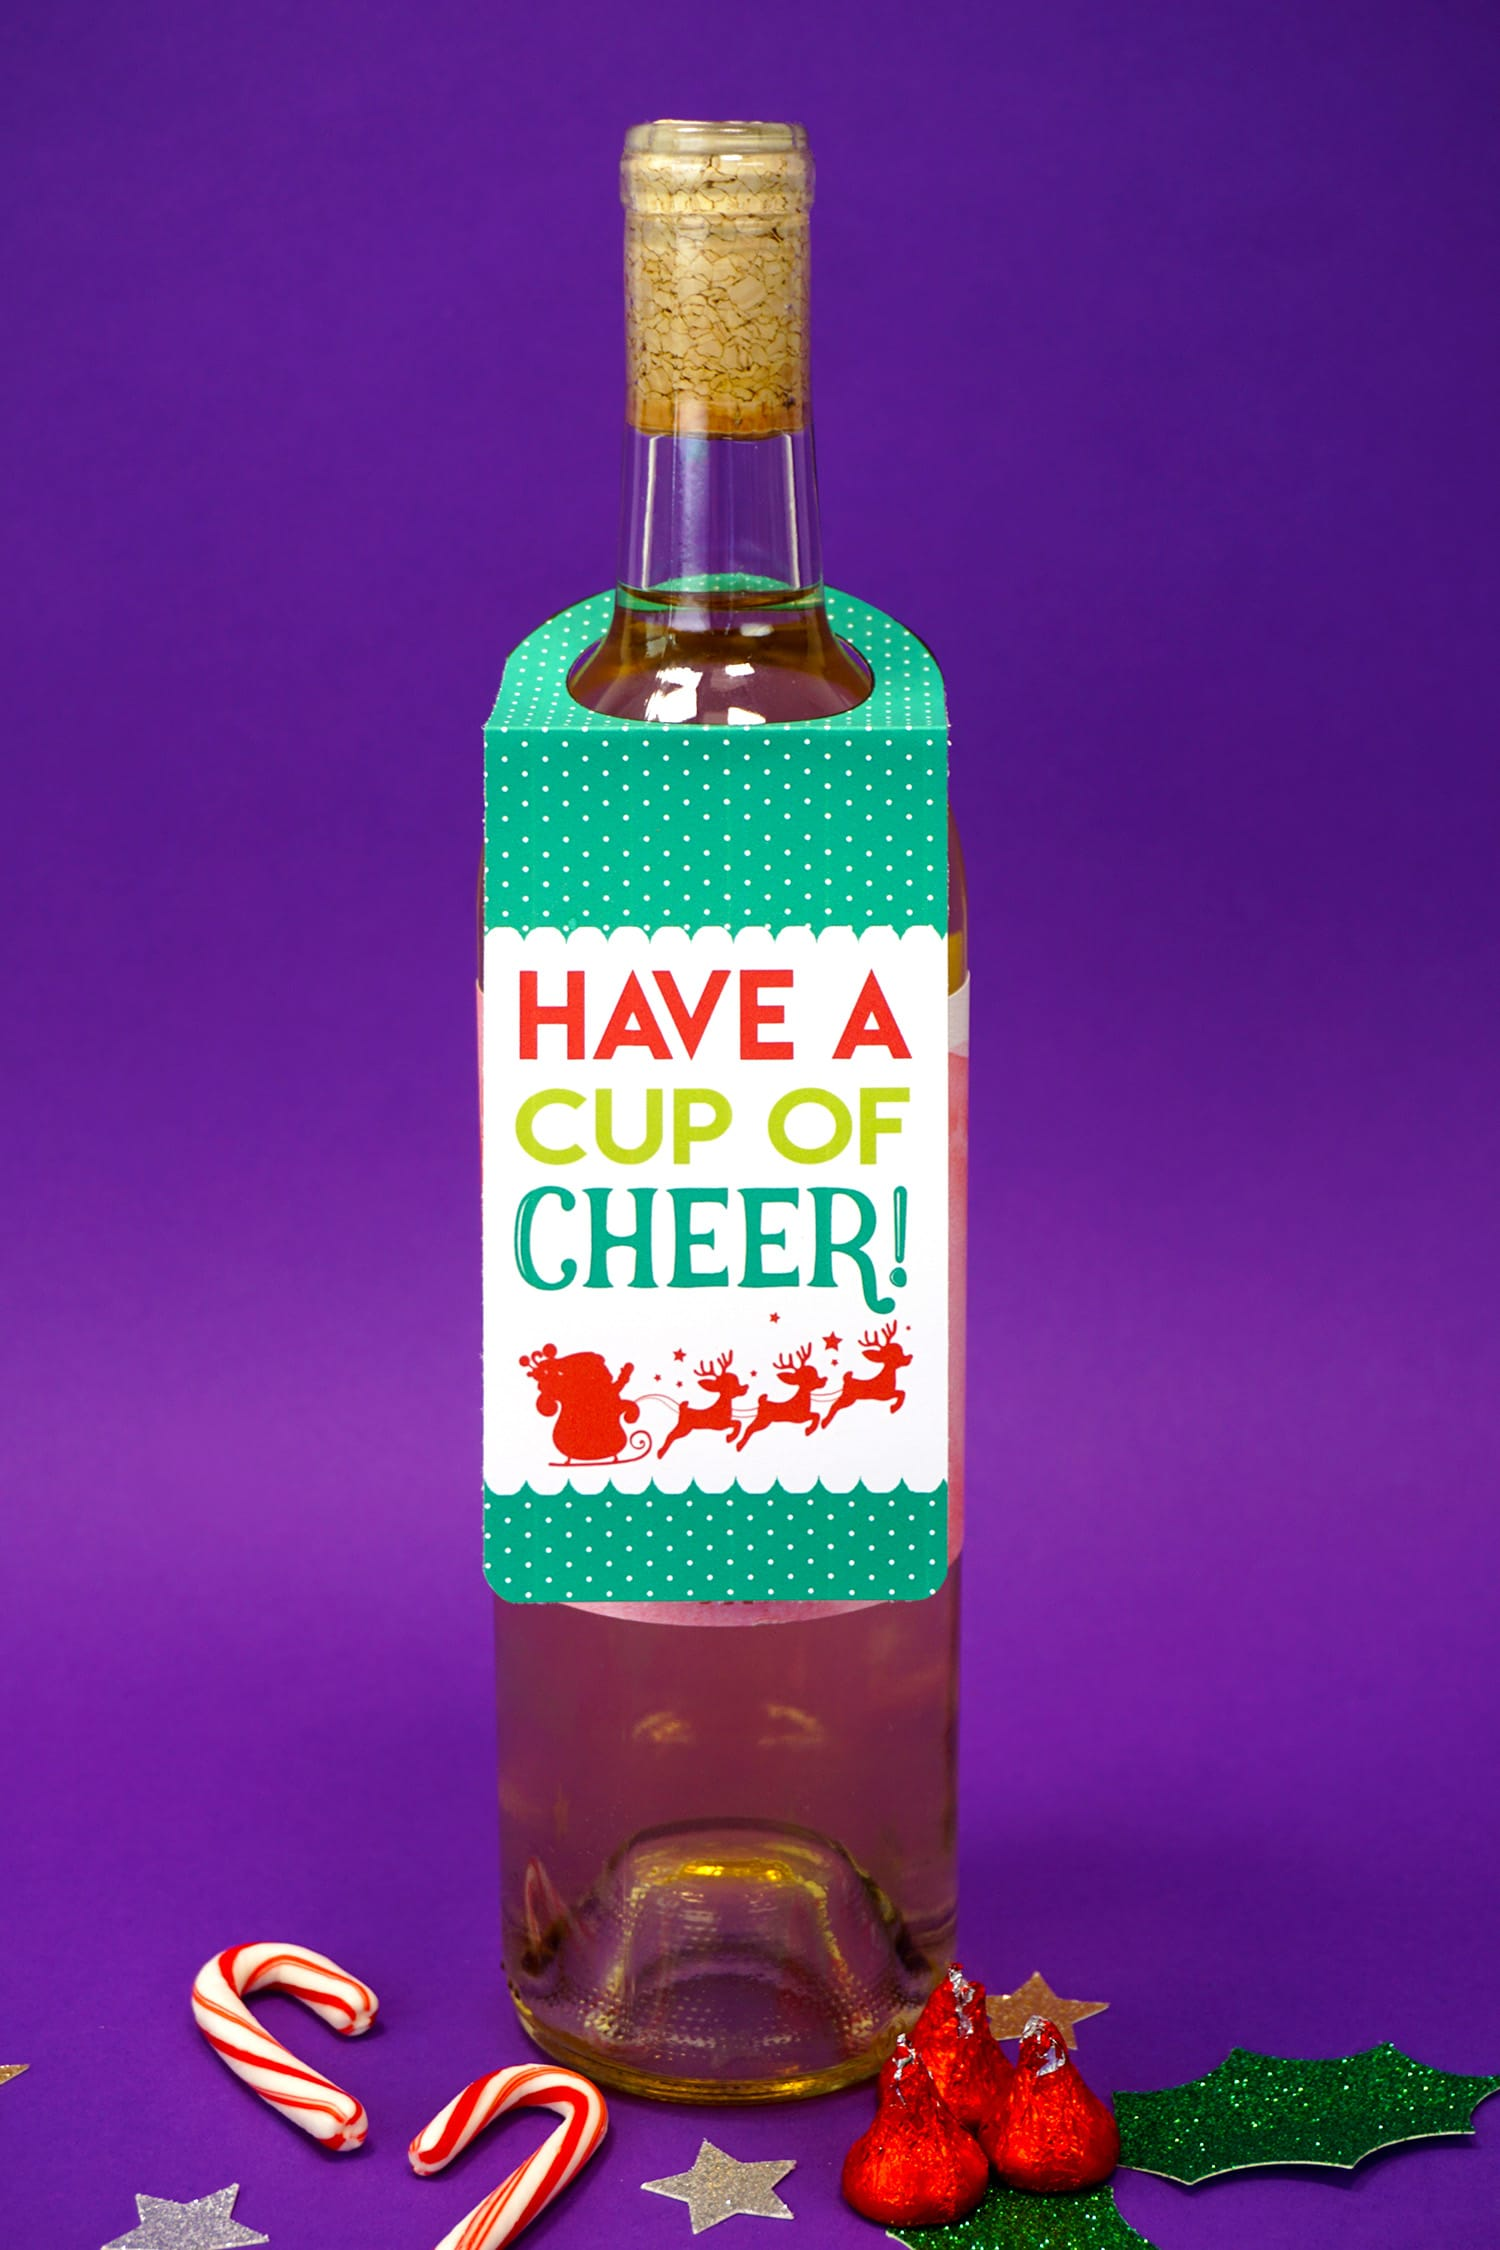 """""""Have a Cup of Cheer"""" red, green, and white """"Merry Christmas"""" red, white, and green Christmas wine tag on bottle on purple background with candy canes and stars"""